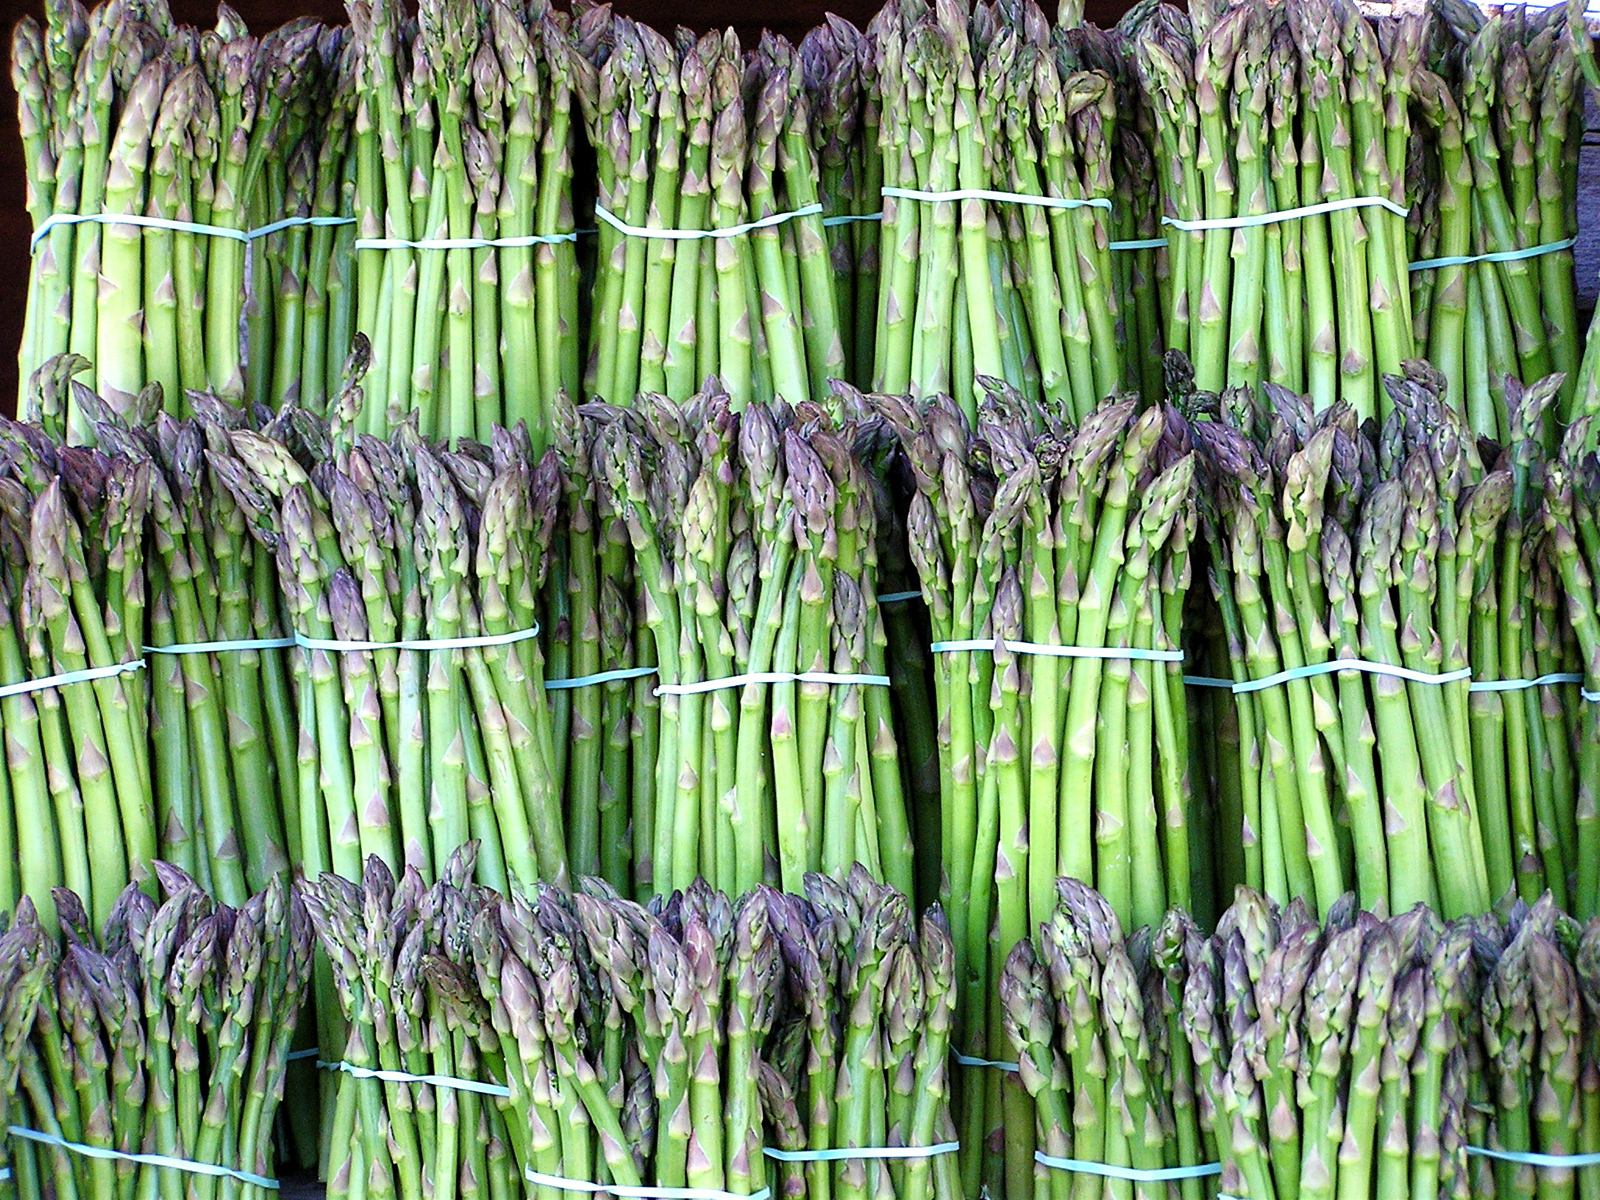 (Photo by Muffet - Asparagus, CC BY 2.0.)